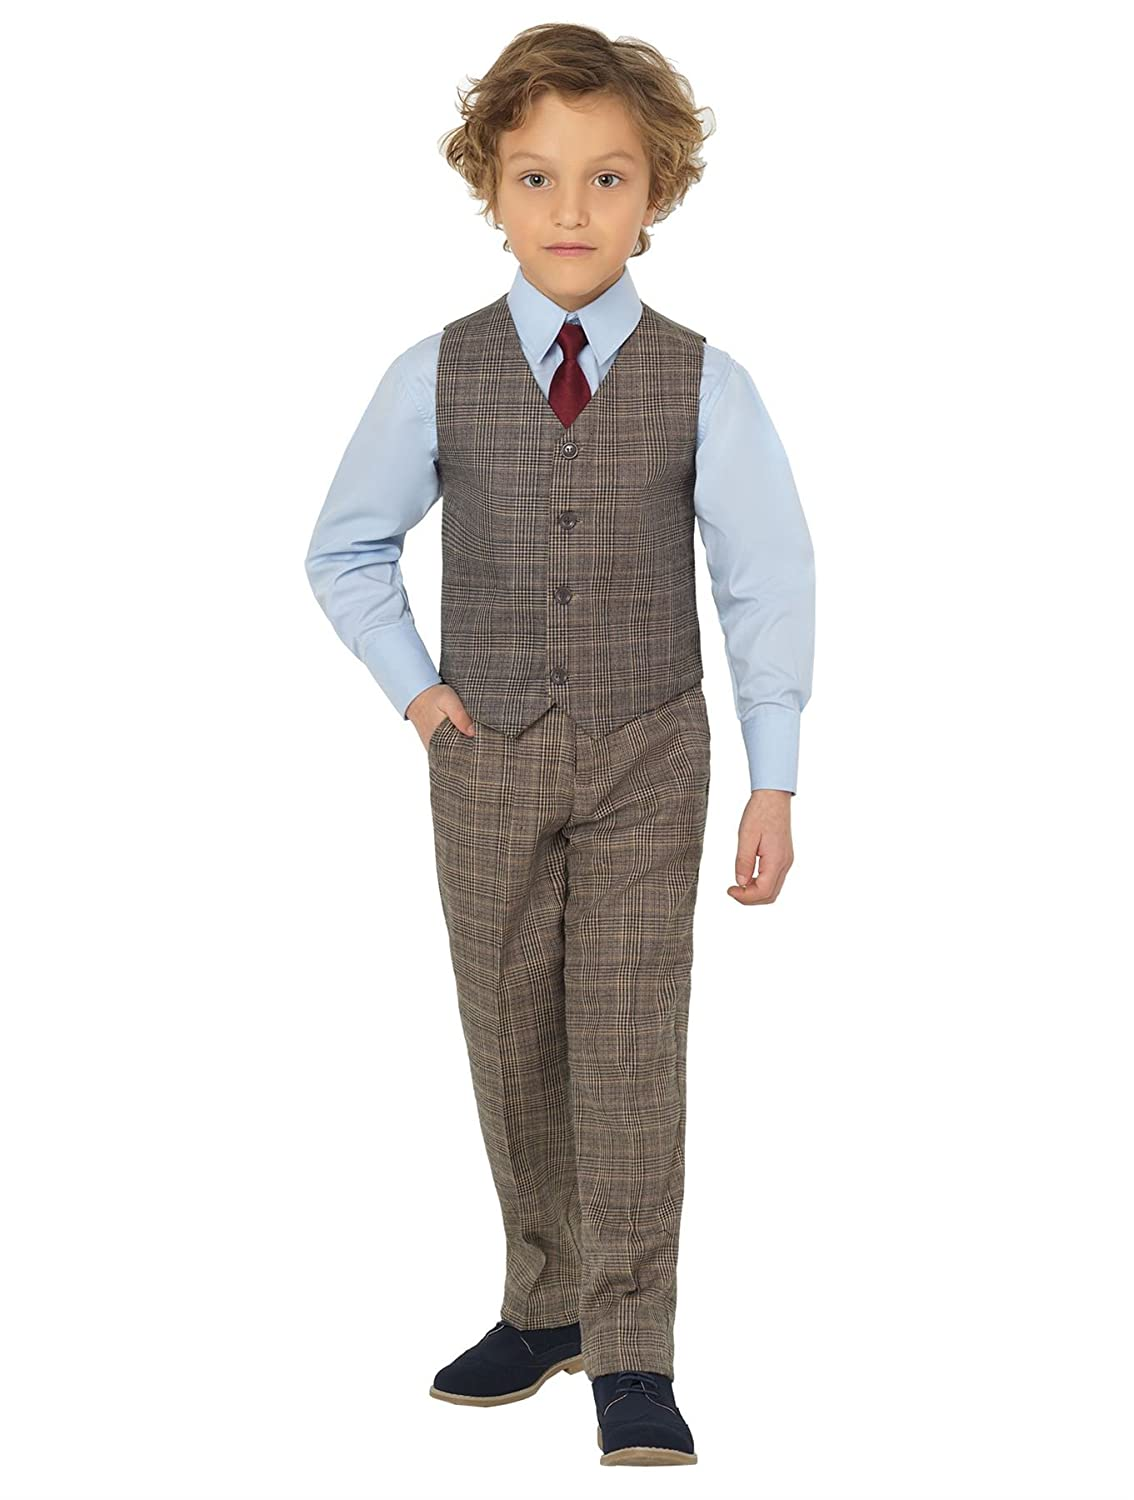 Vintage Style Children's Clothing: Girls, Boys, Baby, Toddler Shiny Penny Boys Suits Page boy Suits Waistcoat Suits 3 Months - 8 Years £24.99 AT vintagedancer.com